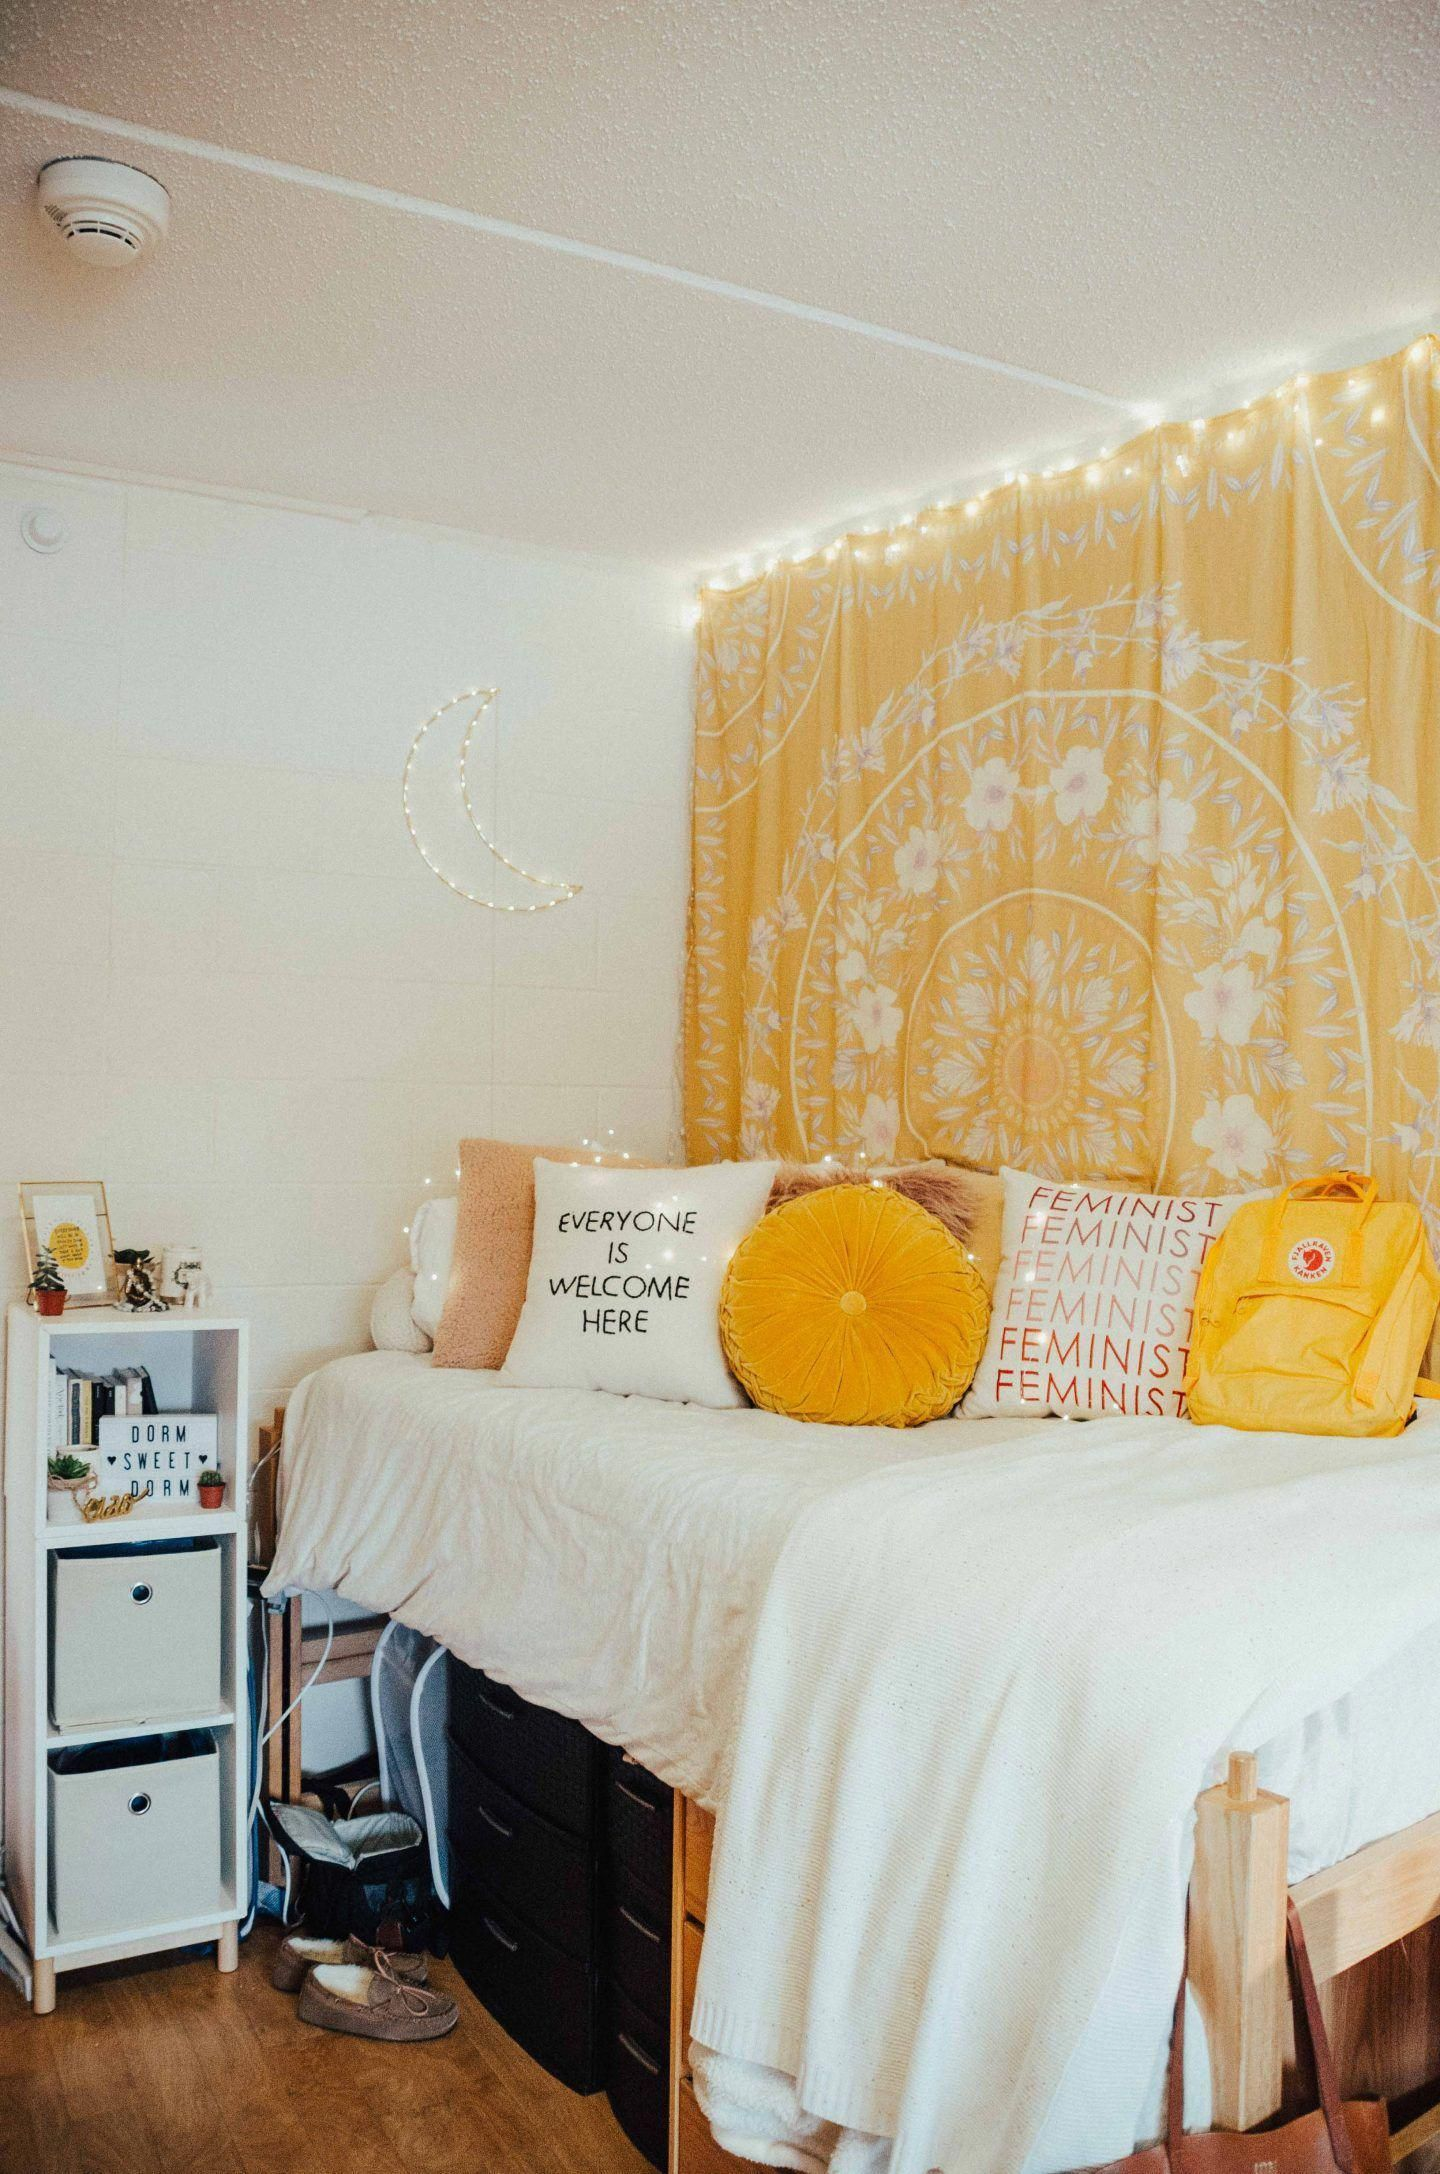 Pin Insta Kaelimariee Guest Bedroom Gray White And Yellow